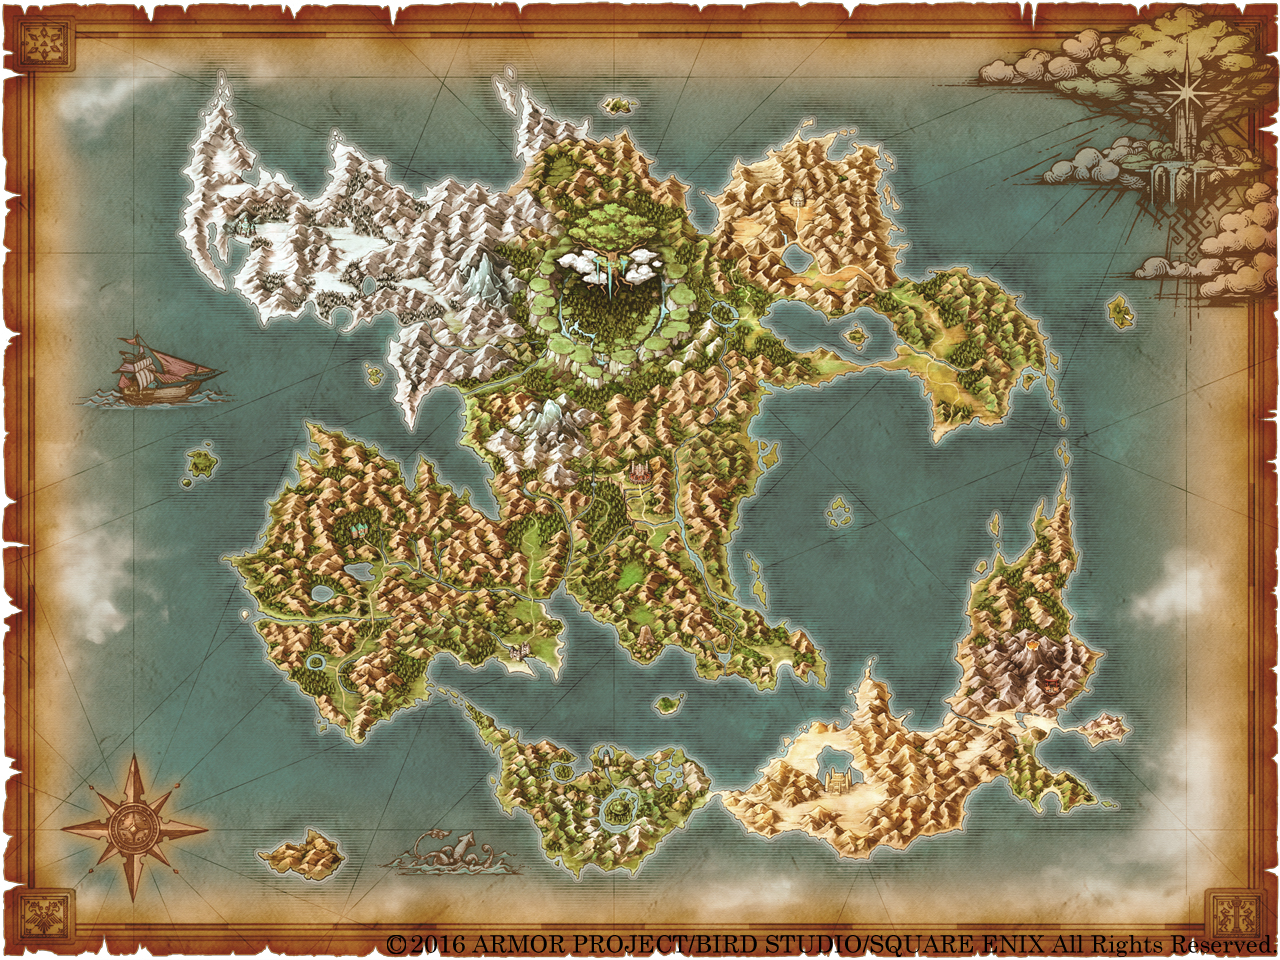 How Large Is Dq11 S World Compared To That Of Dq8 Dragonquest